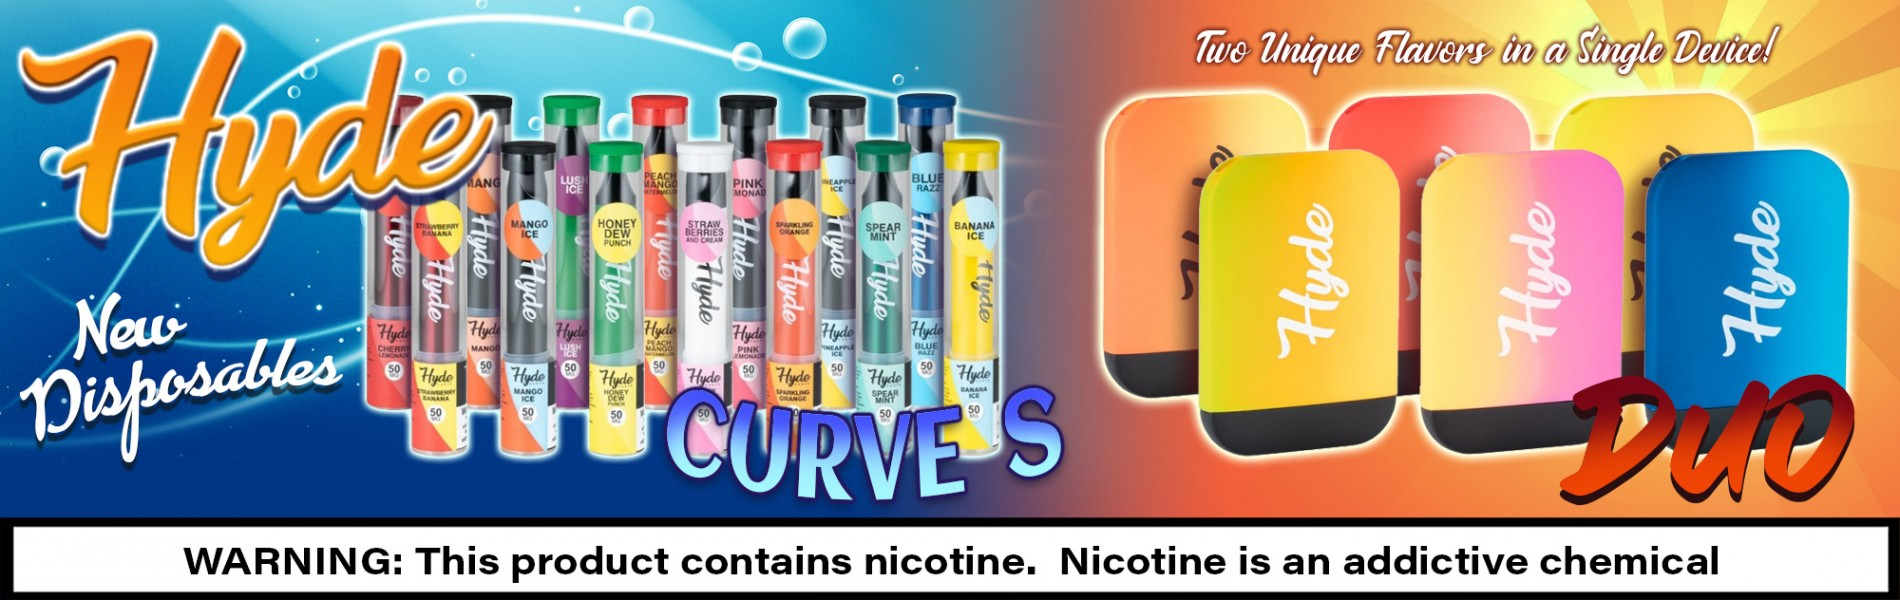 Hyde Curve S and Hyde Duo Disposable Vape Devices